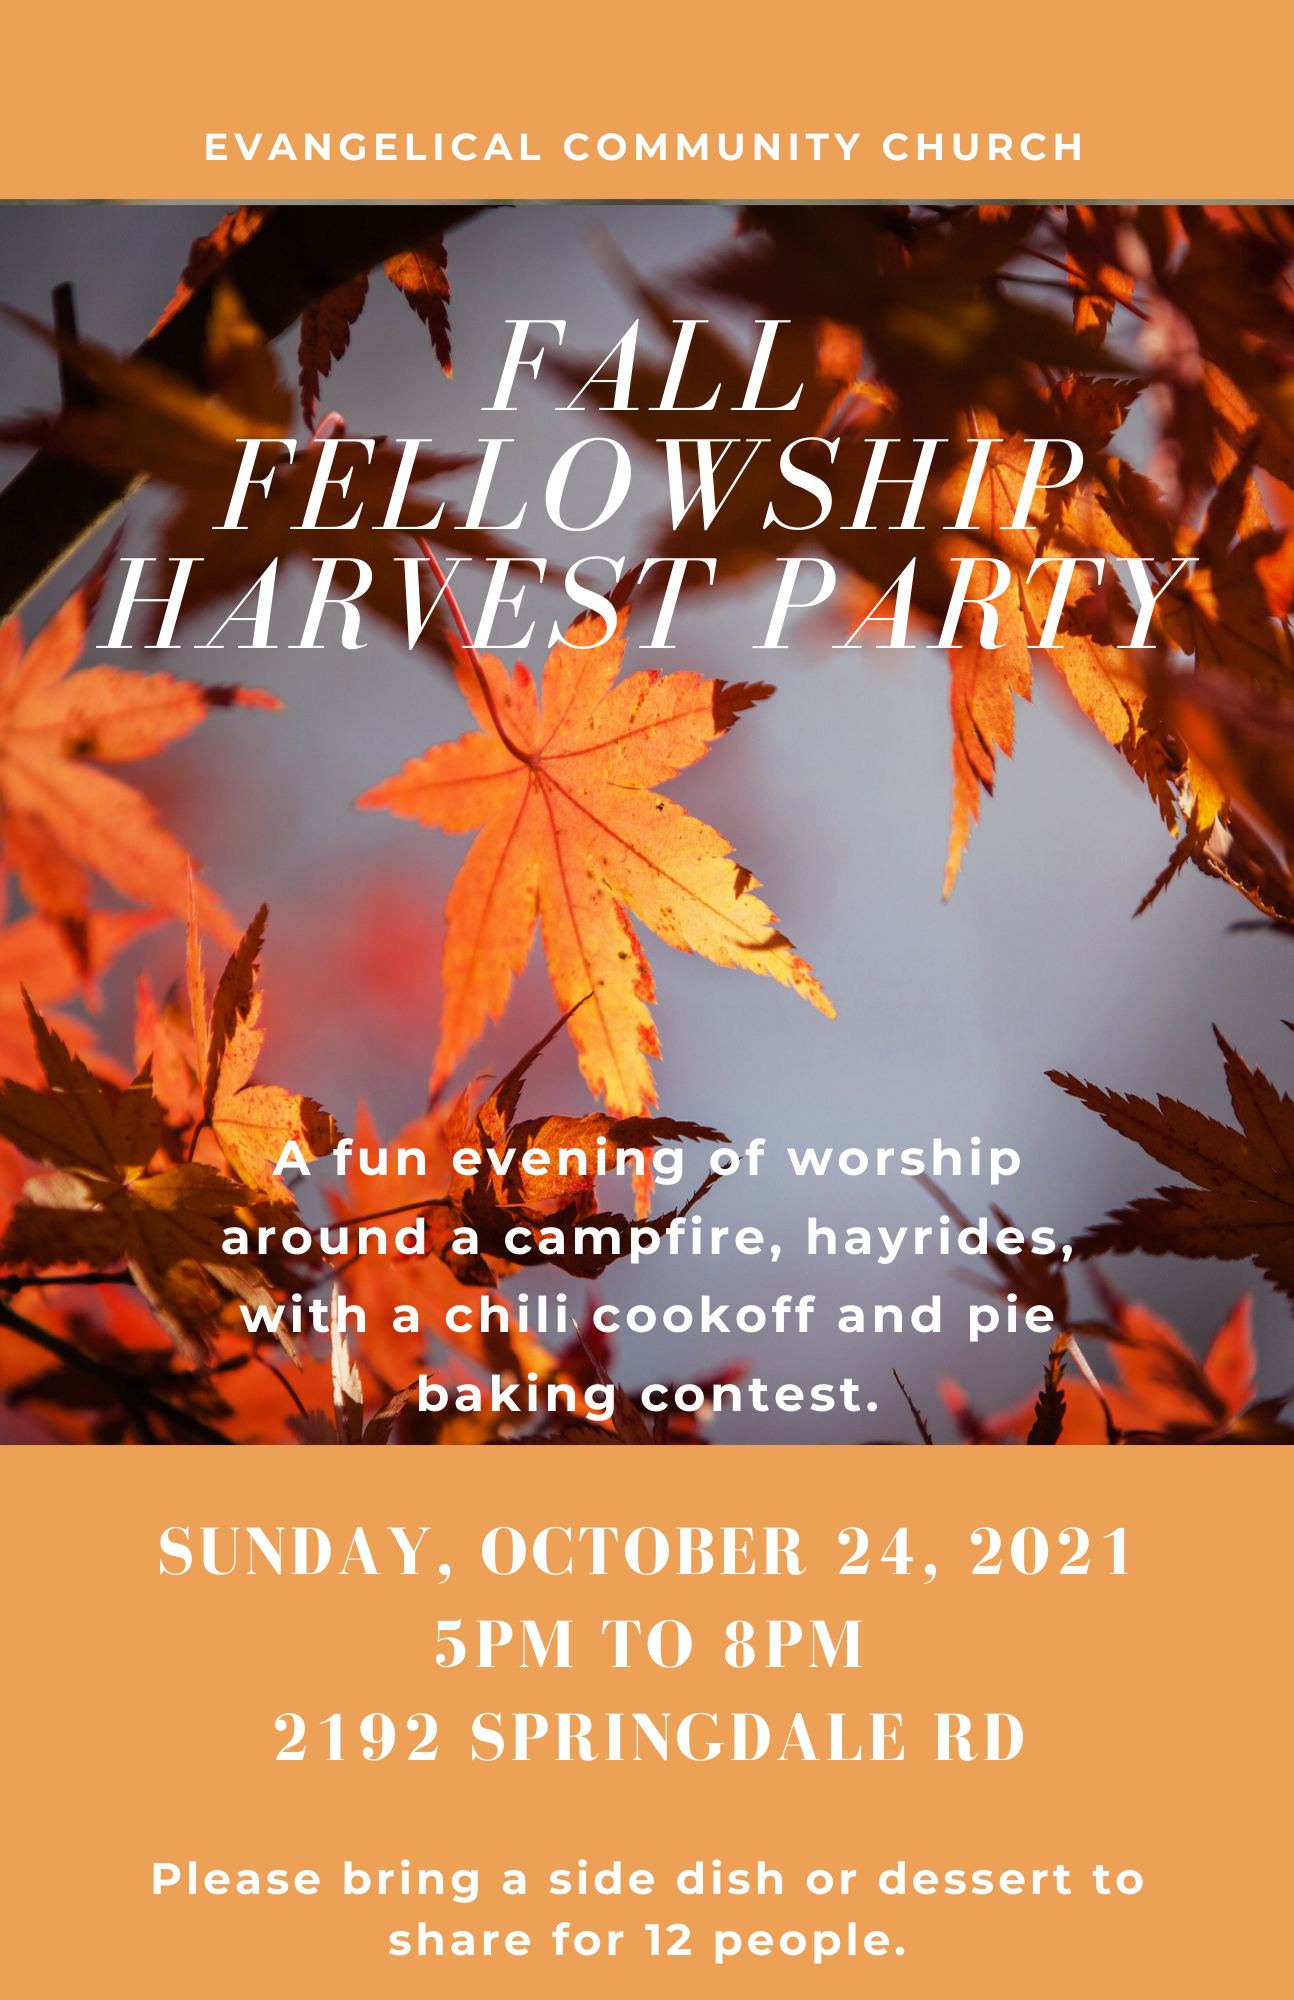 10.24.21 Fall Fellowship Harvest Party flyer (bold) image